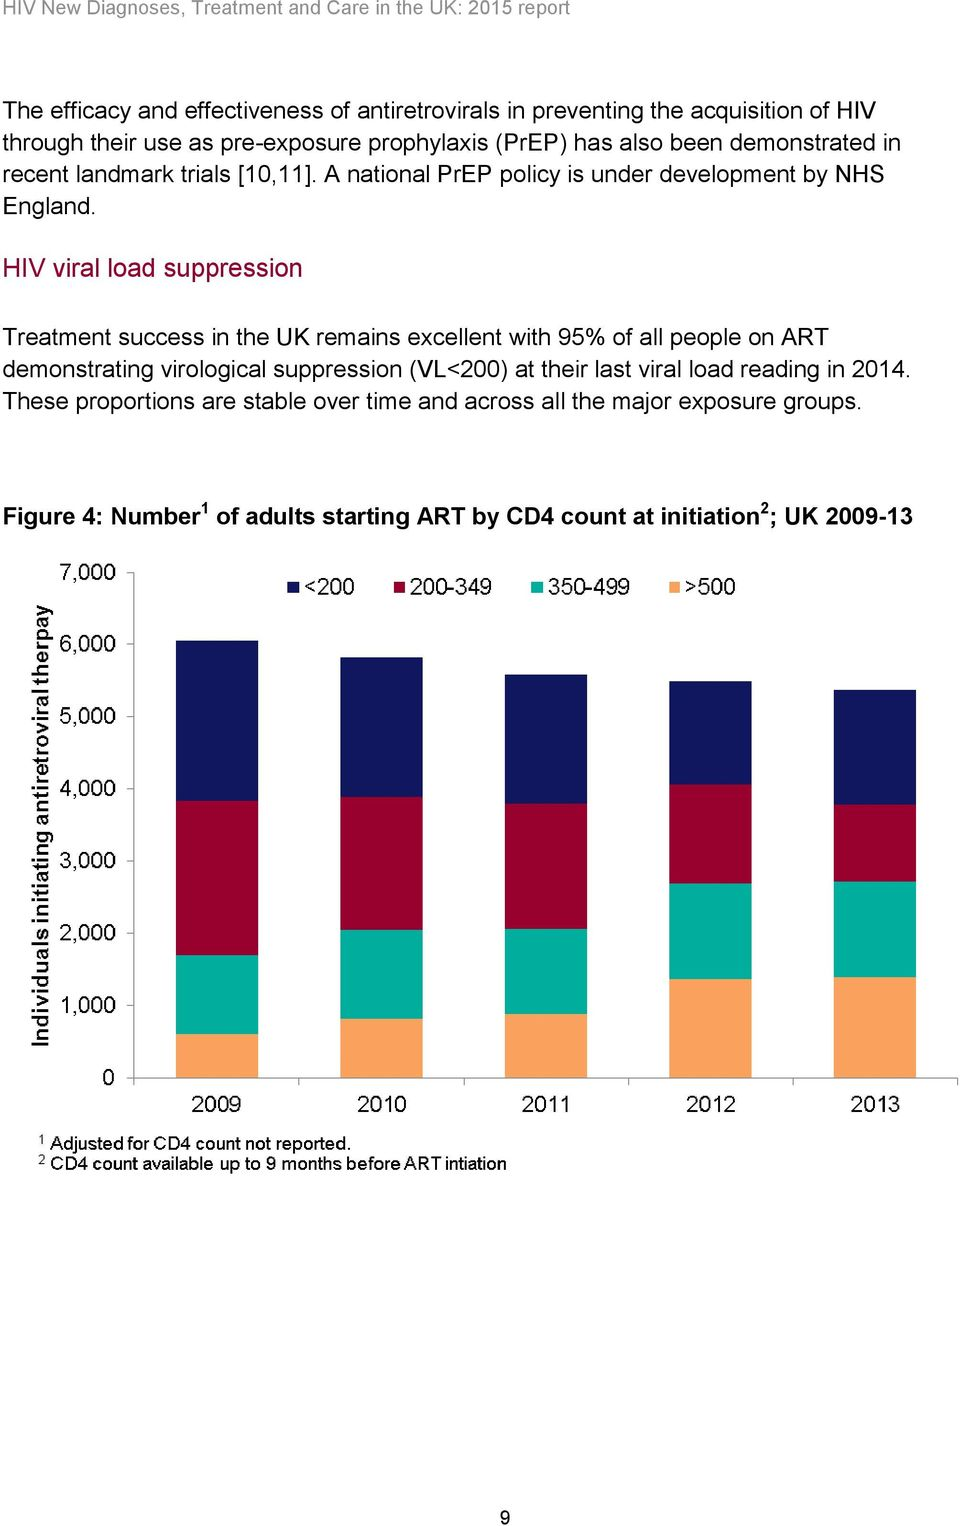 HIV viral load suppression Treatment success in the UK remains excellent with 95% of all people on ART demonstrating virological suppression (VL<200) at